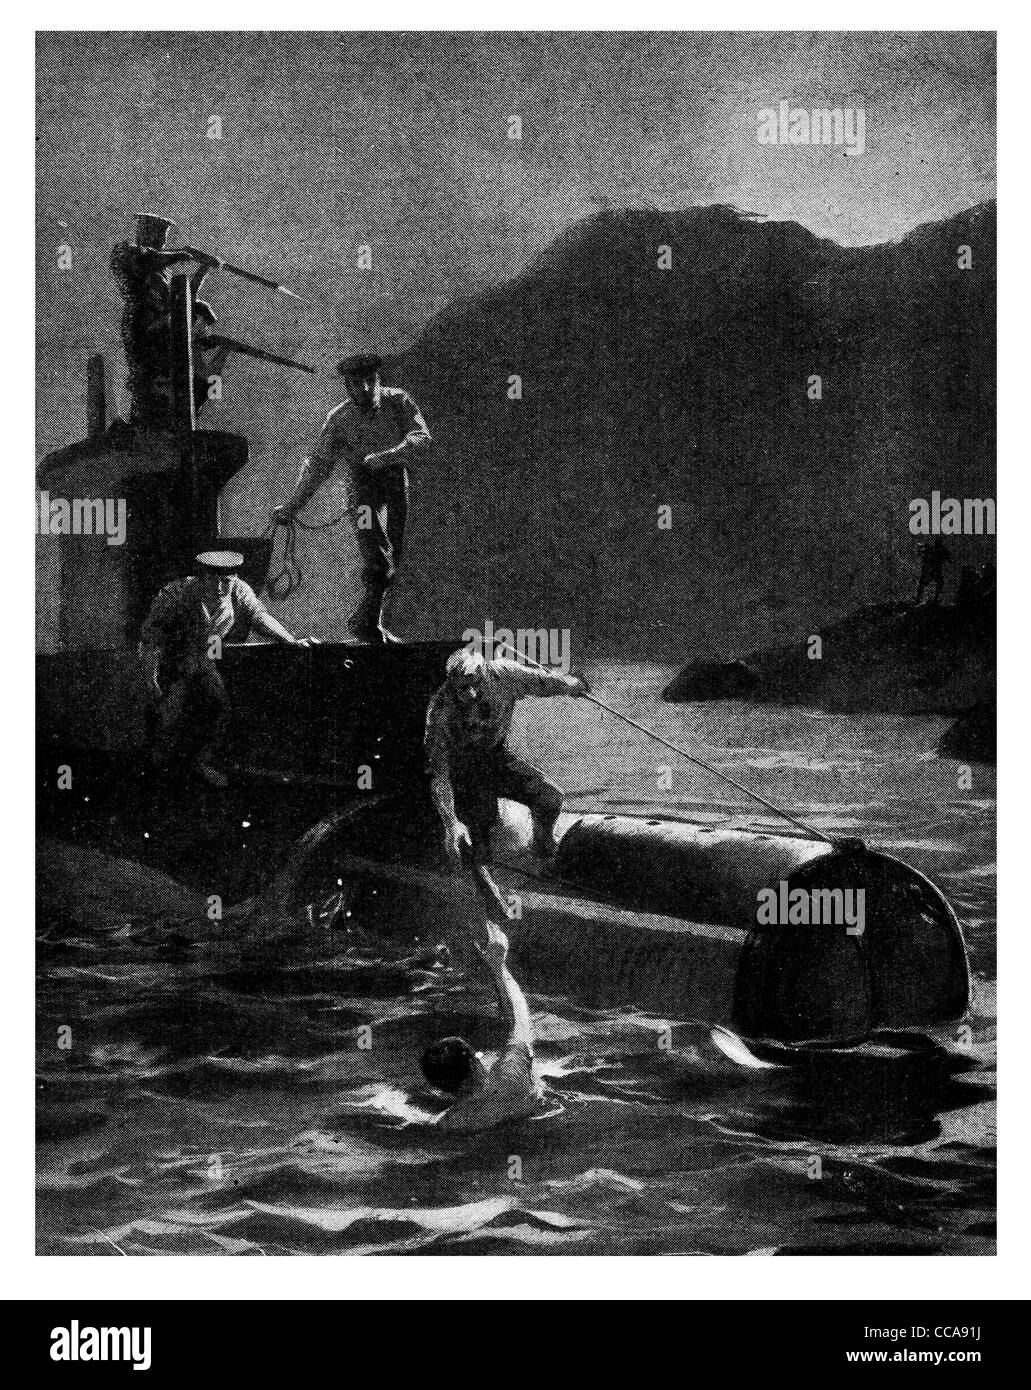 1915 august 21st Lieut D'Oyly Hughes swam from a submarine E11 to destroy Constantinople Baghdad Railway viaduct - Stock Image